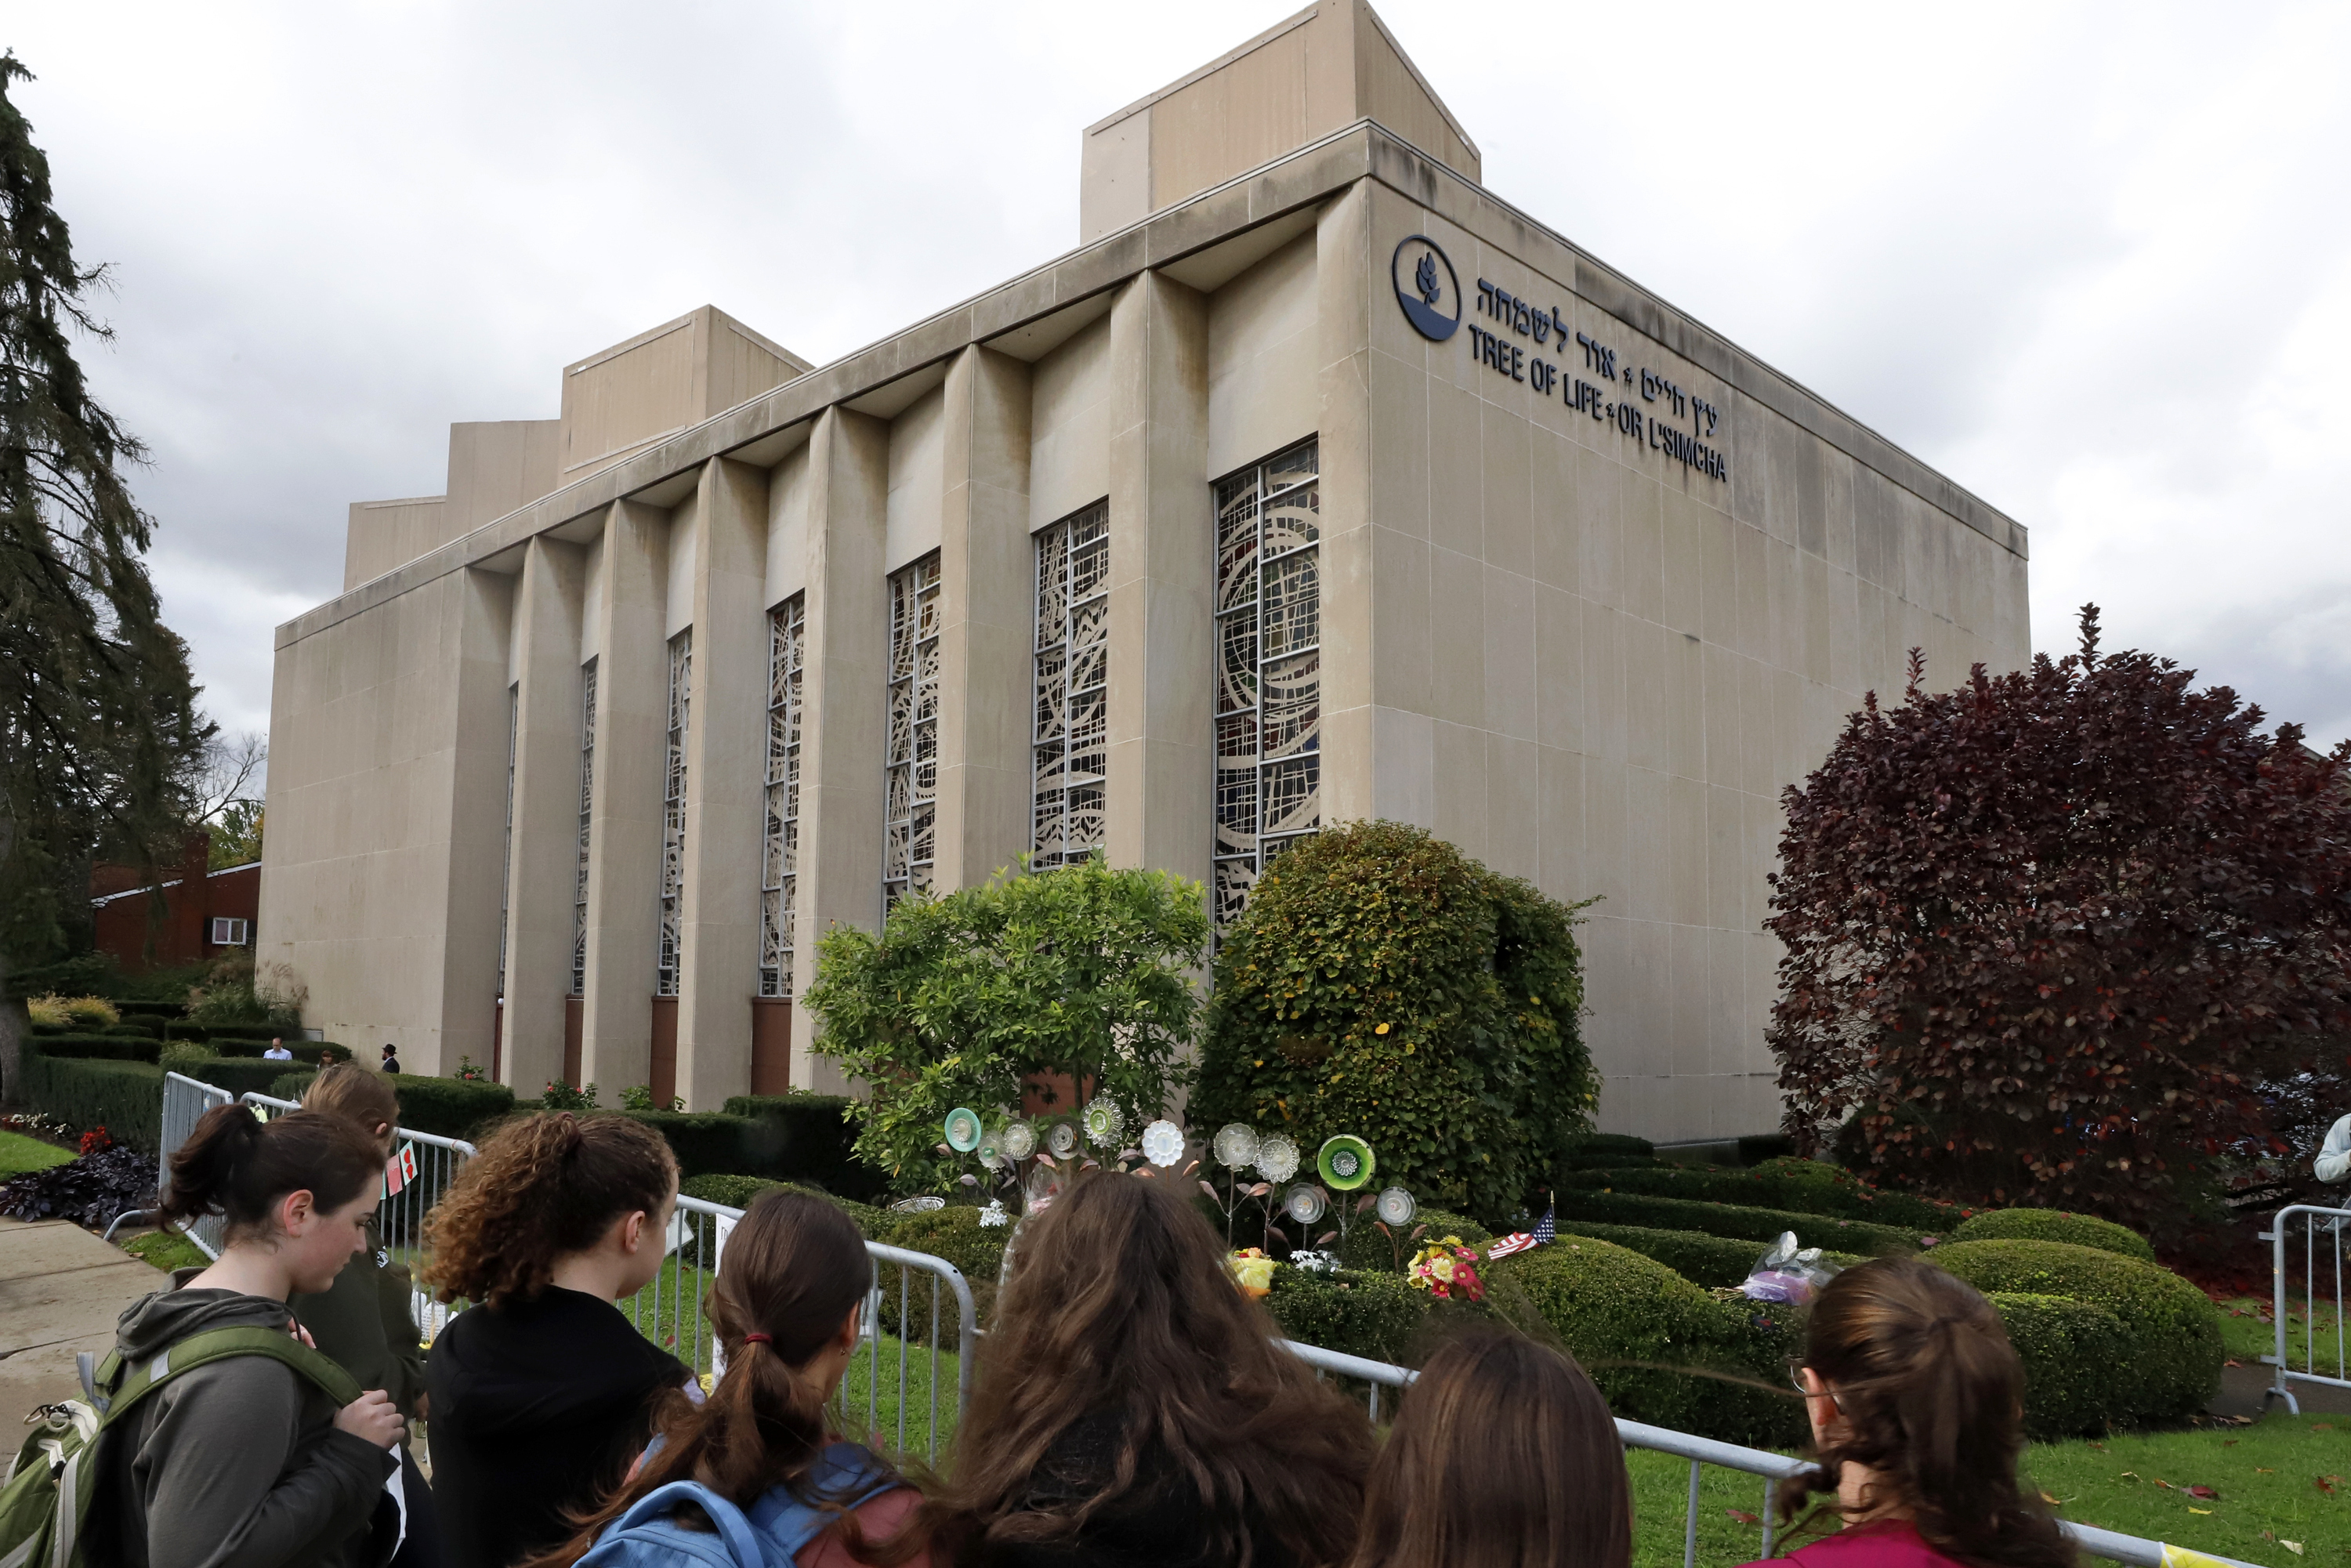 A group of students from a Pittsburgh Yeshiva school gather outside the Tree of Life synagogue in Pittsburgh on Sunday, Oct. 27, 2019, the first anniversary of the shooting at the synagogue, that killed 11 worshippers.